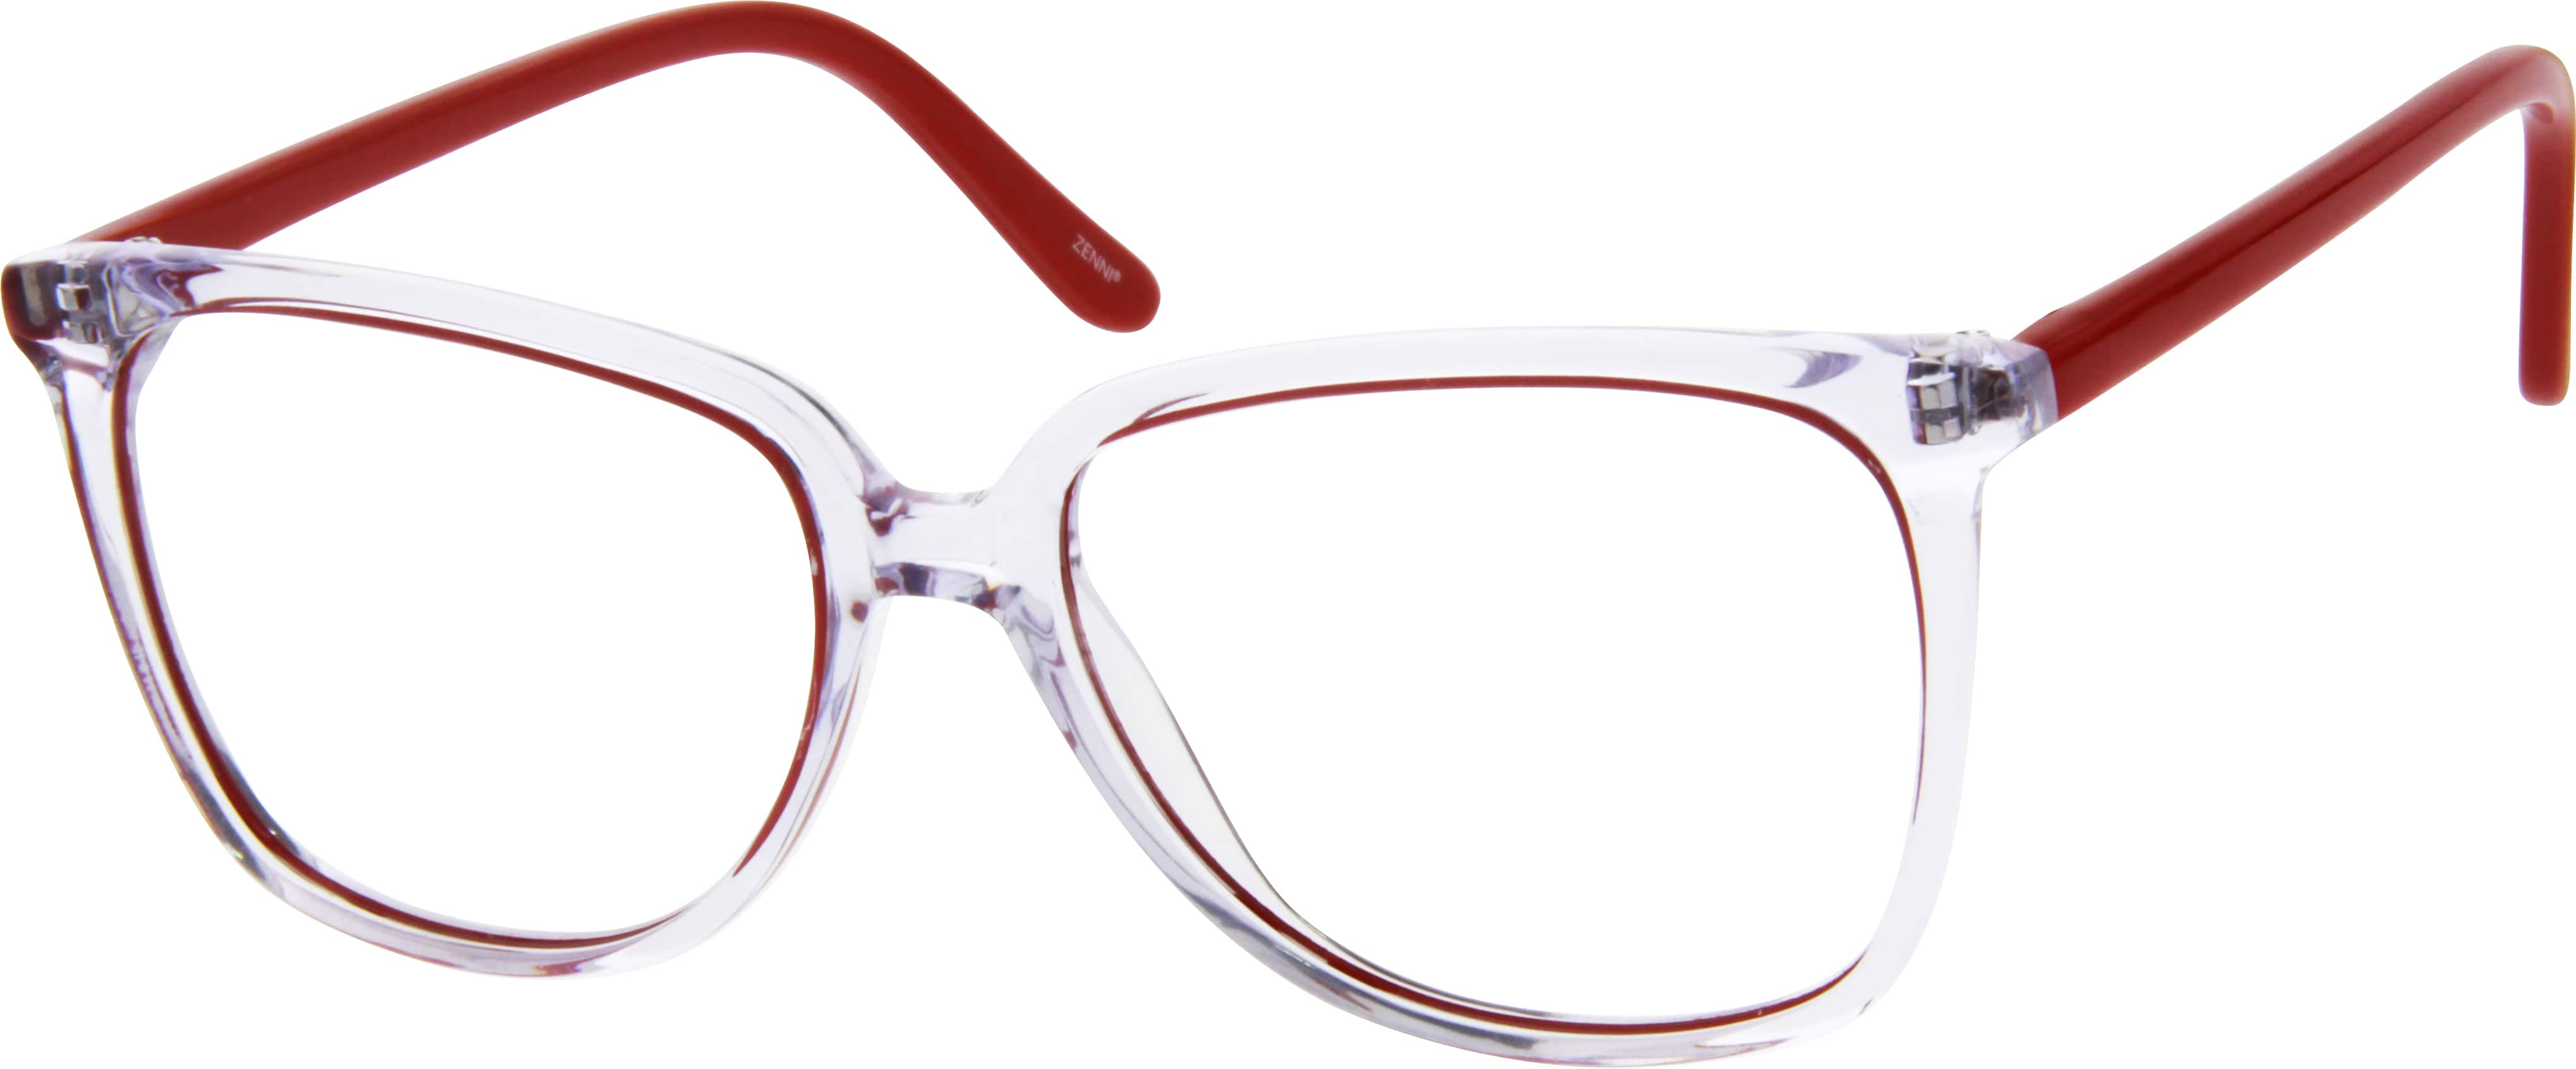 Women Full Rim Acetate/Plastic Eyeglasses #185623